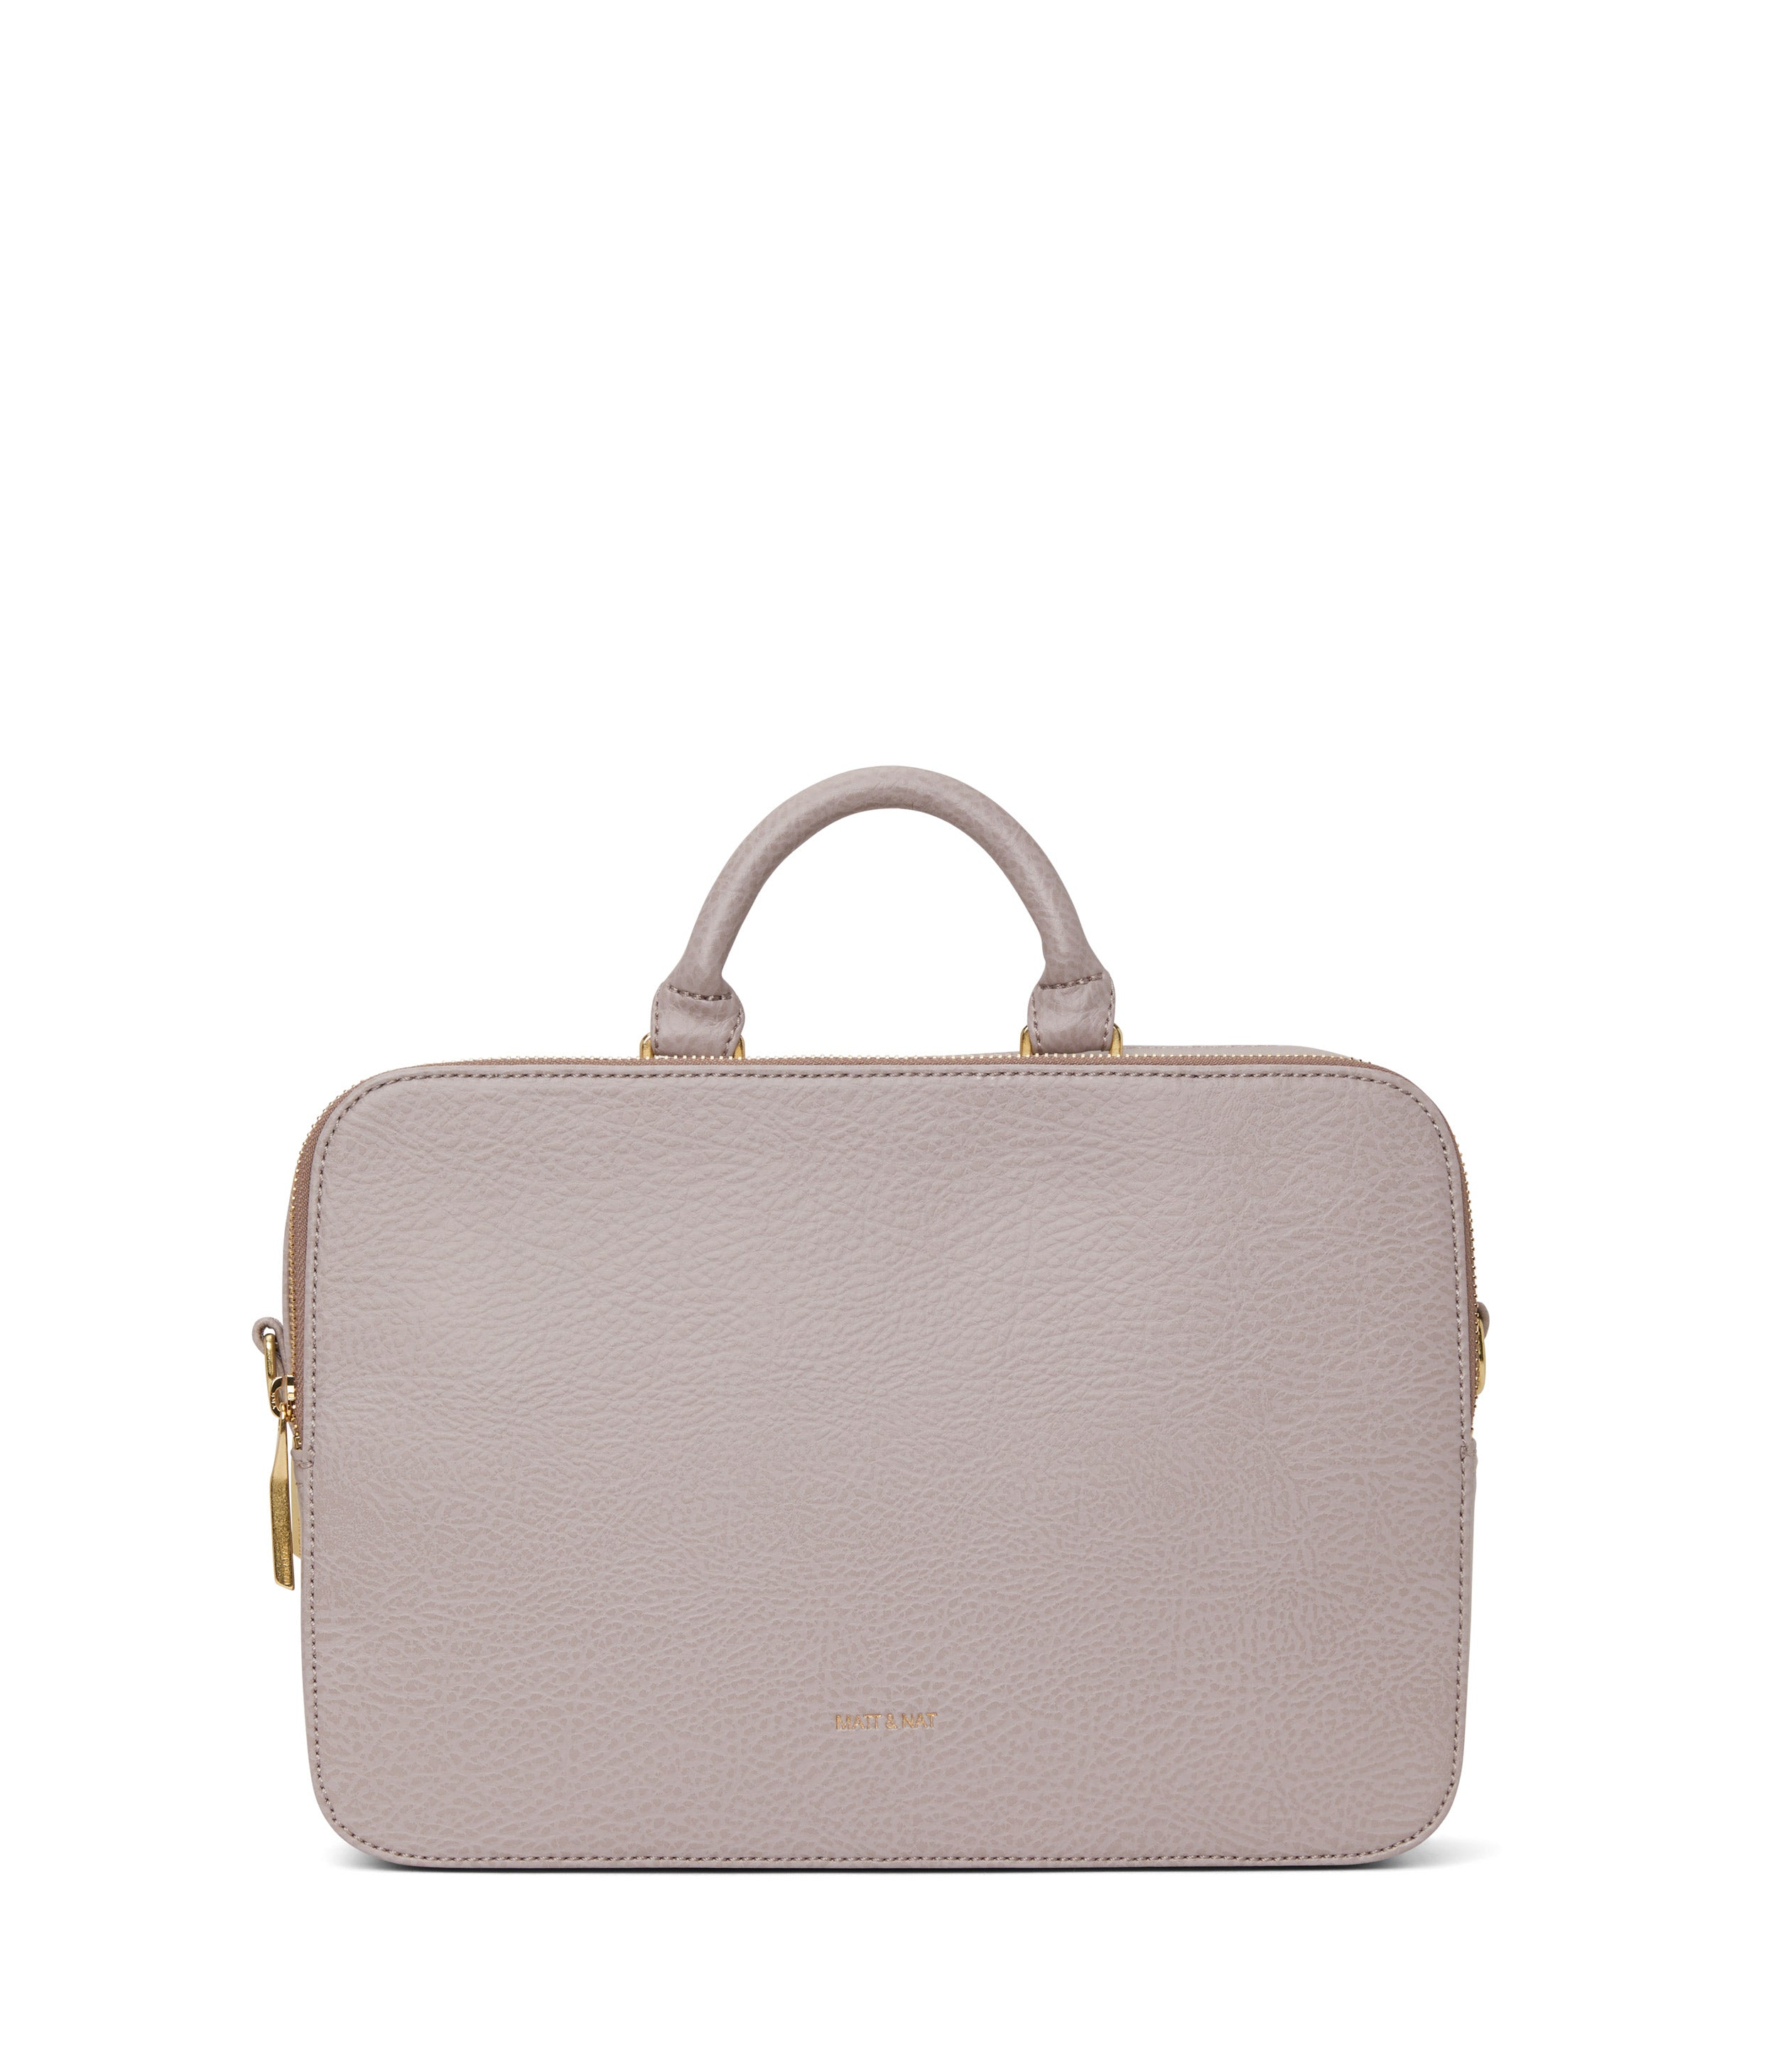 Muse Satchel